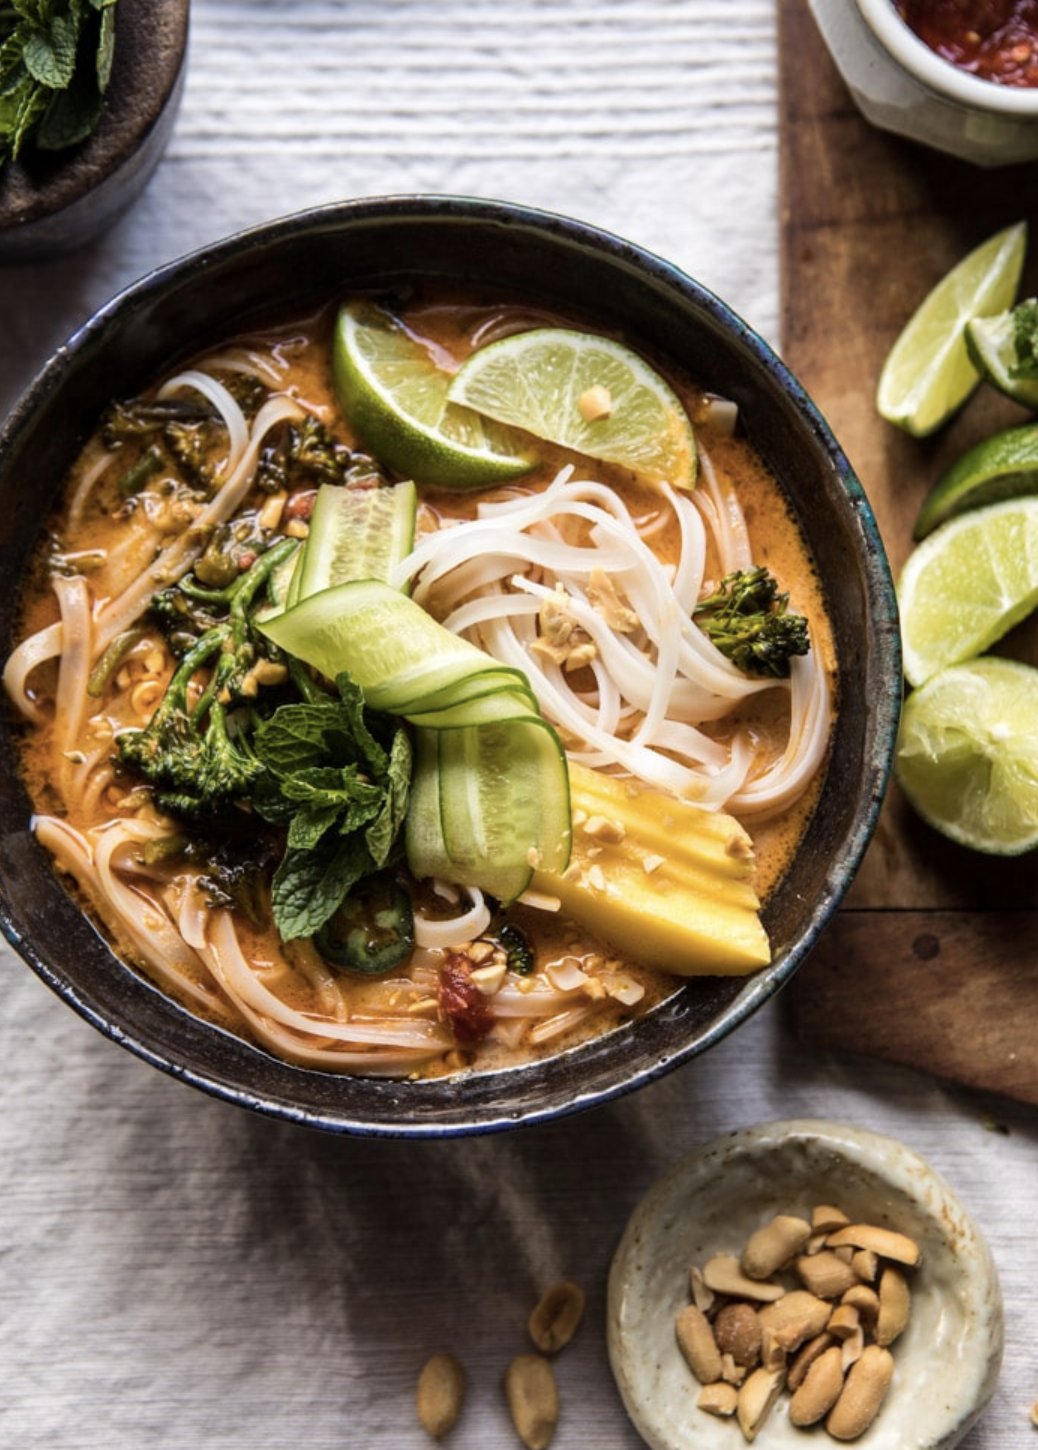 It's hard to believe only 20 minutes stand between you and this amazing soup.